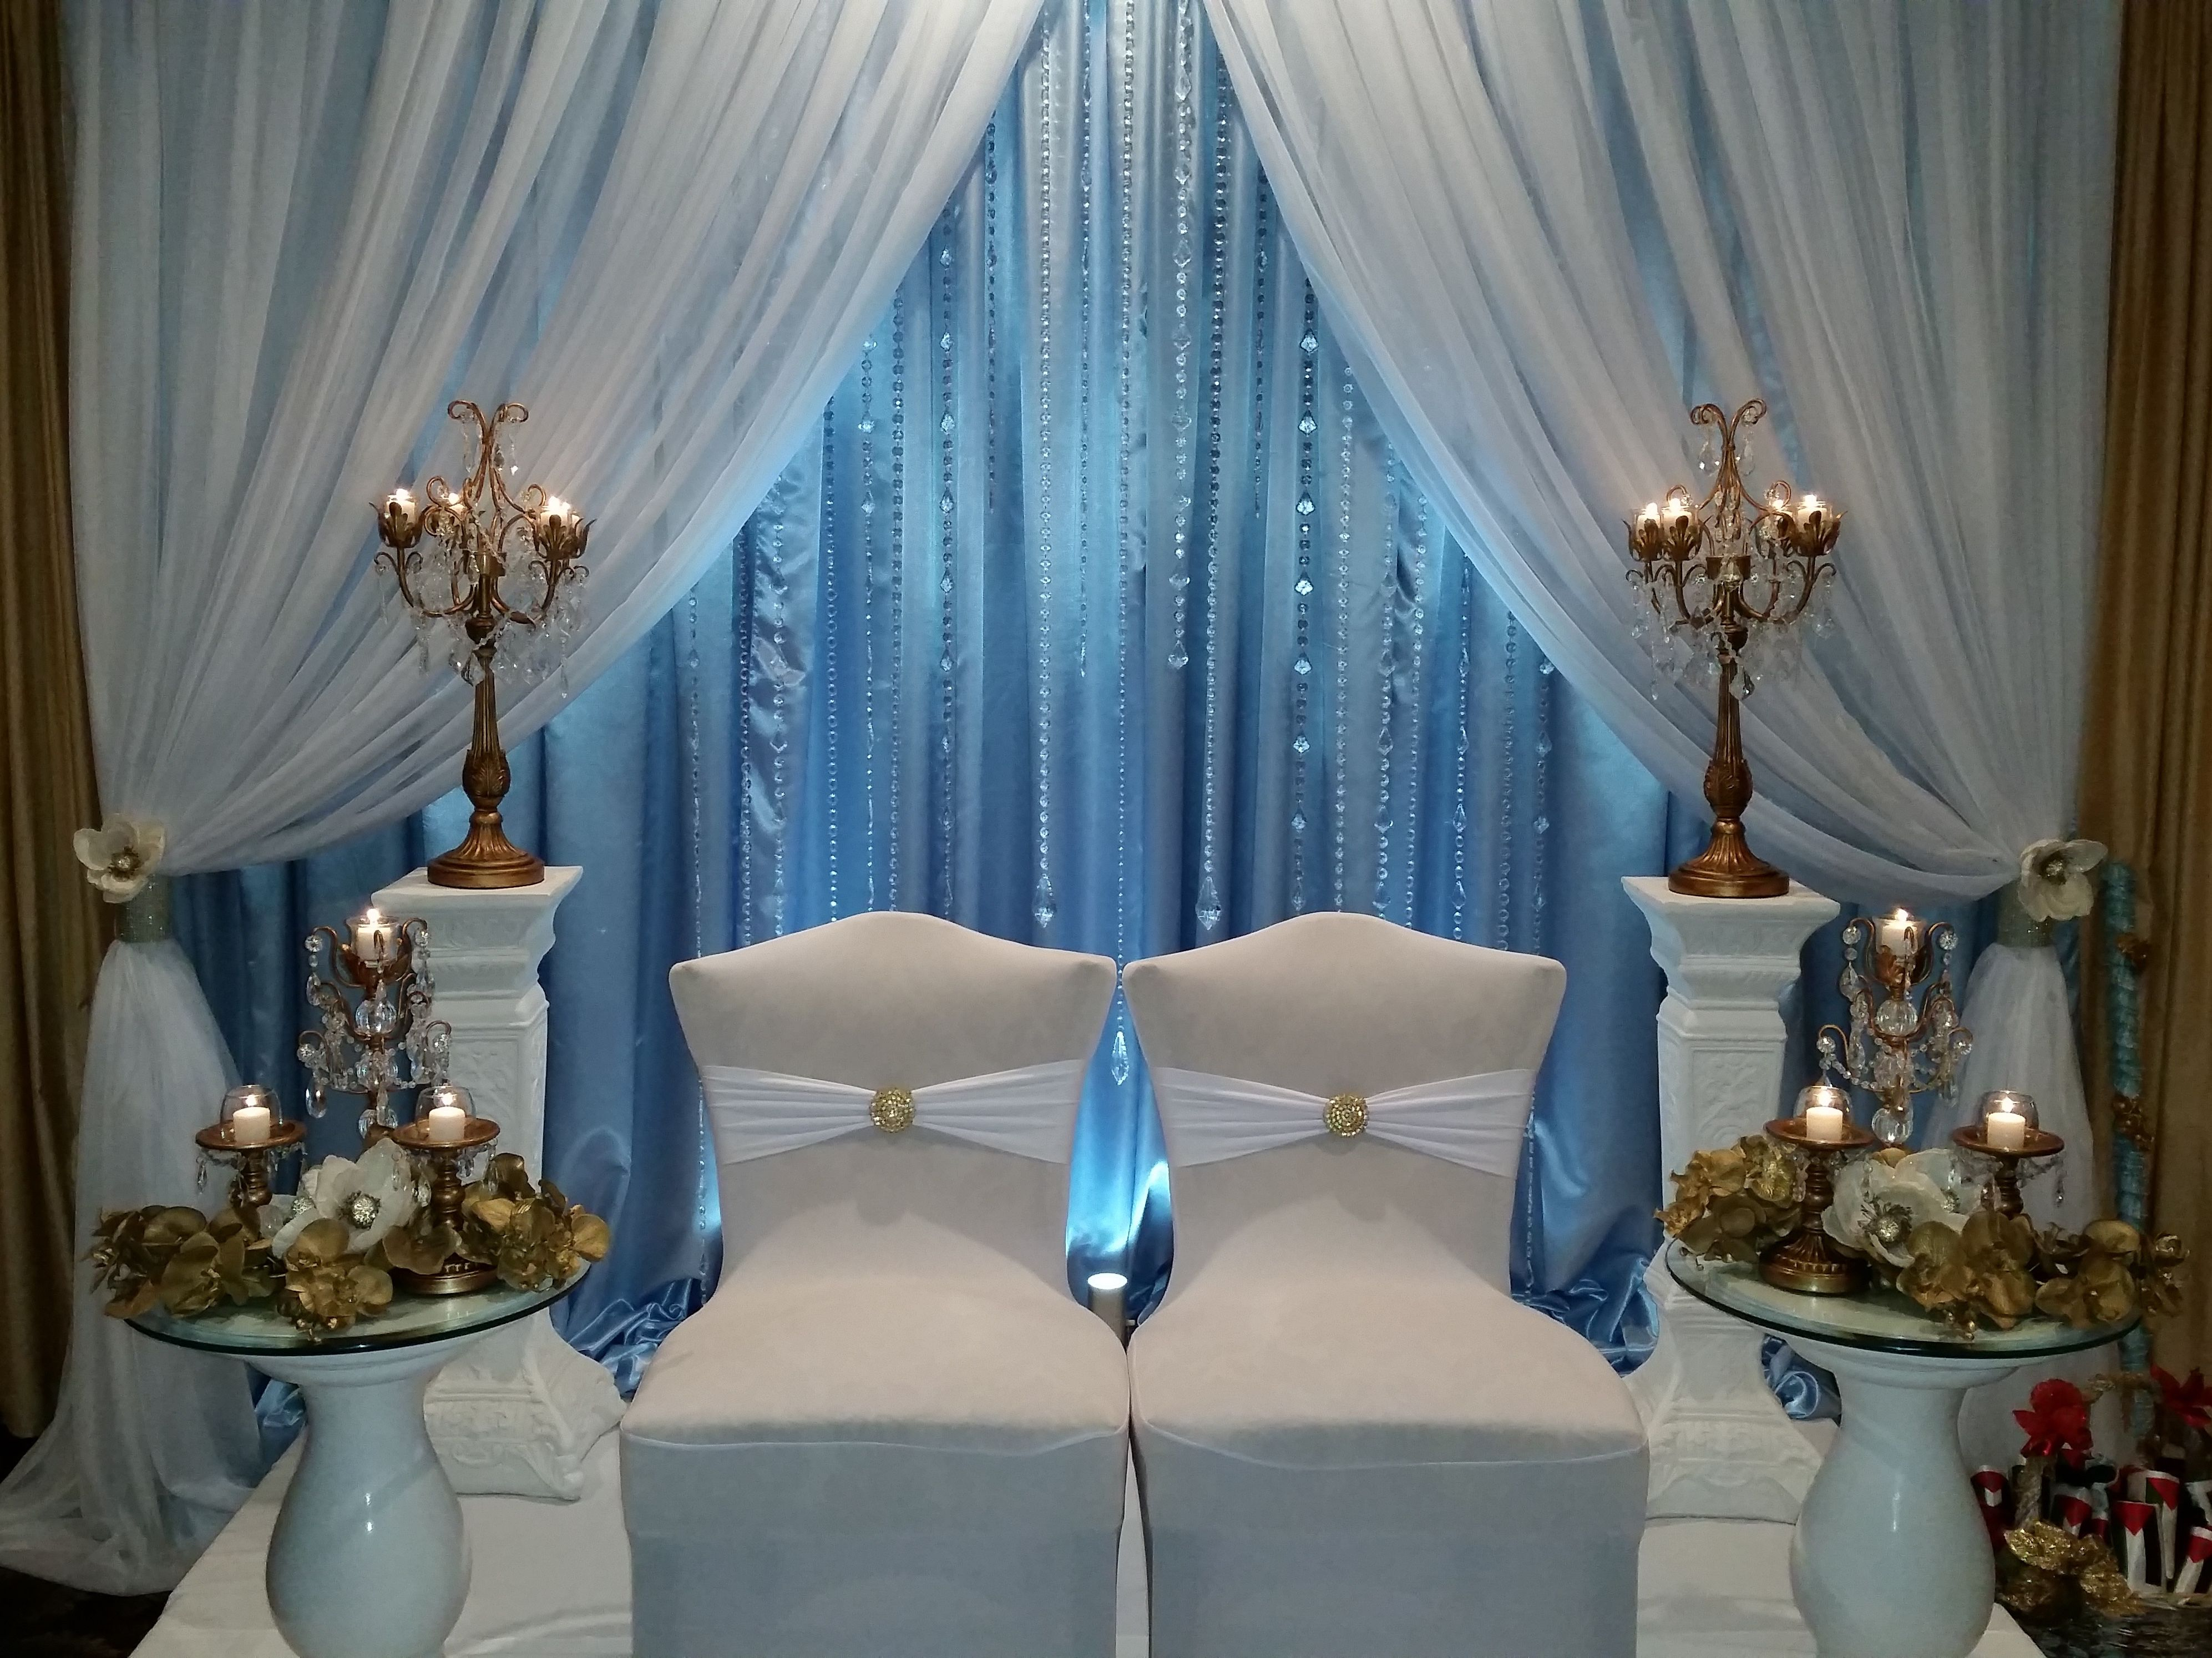 baby blue wedding chair covers stickley dining room plans bride and groom stage satin sheer white